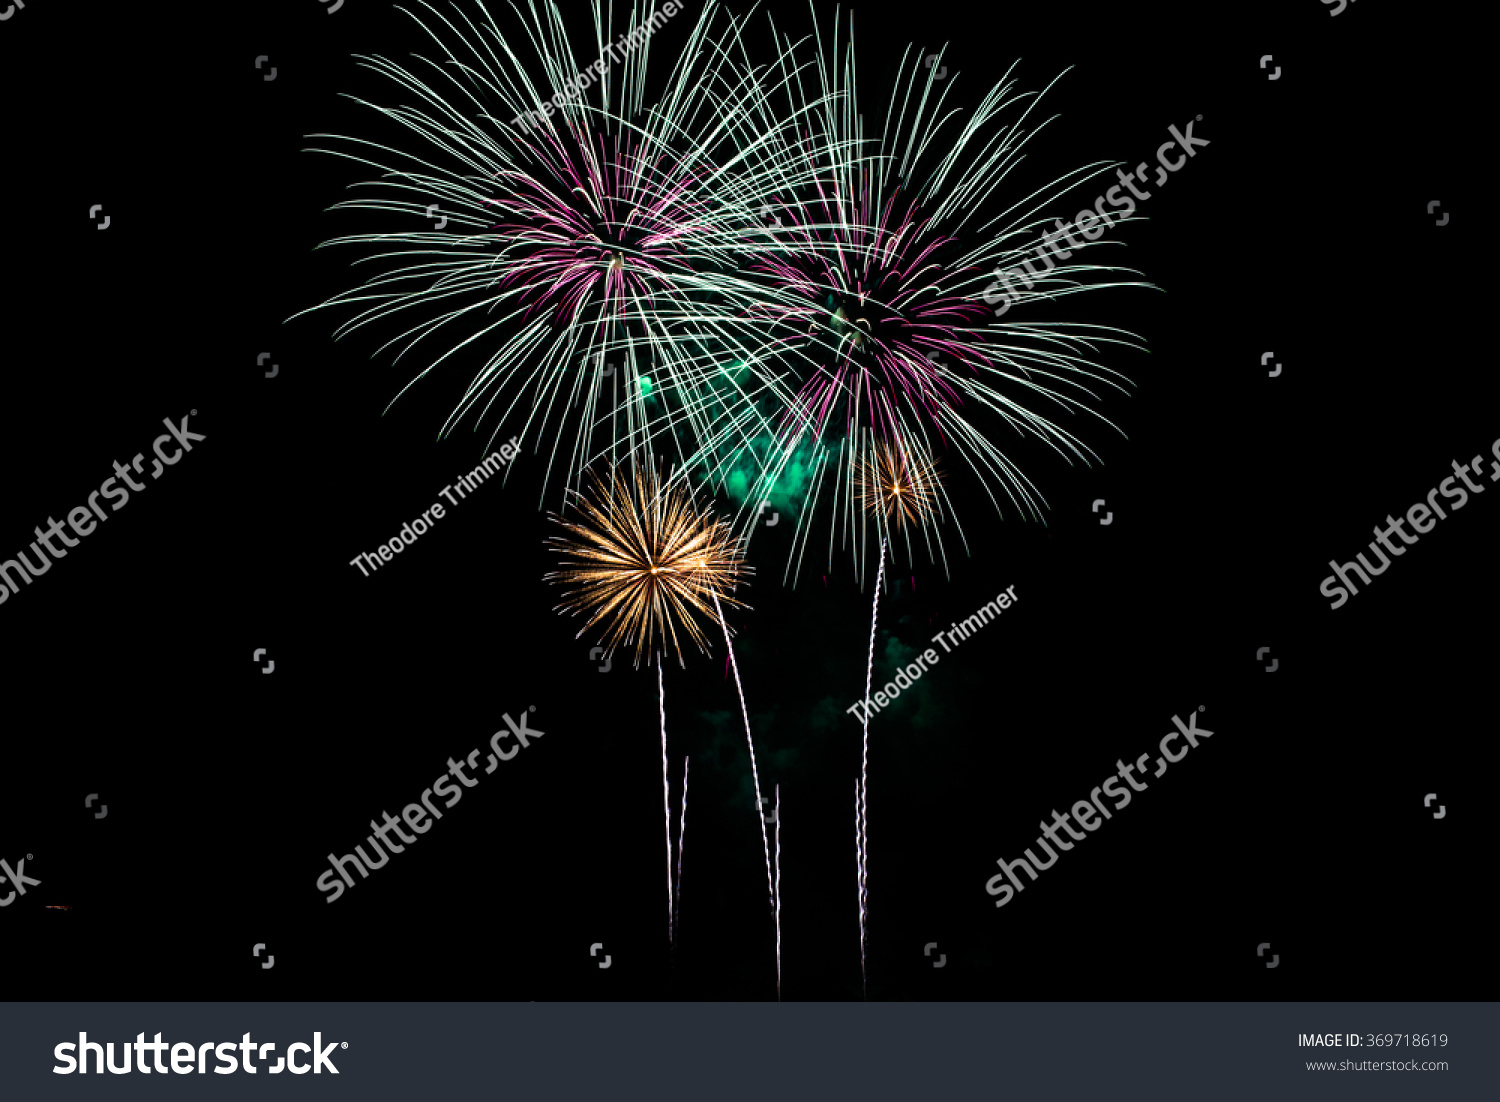 Pastel Blue, Green And Pink Fireworks Display. Stock Photo ...